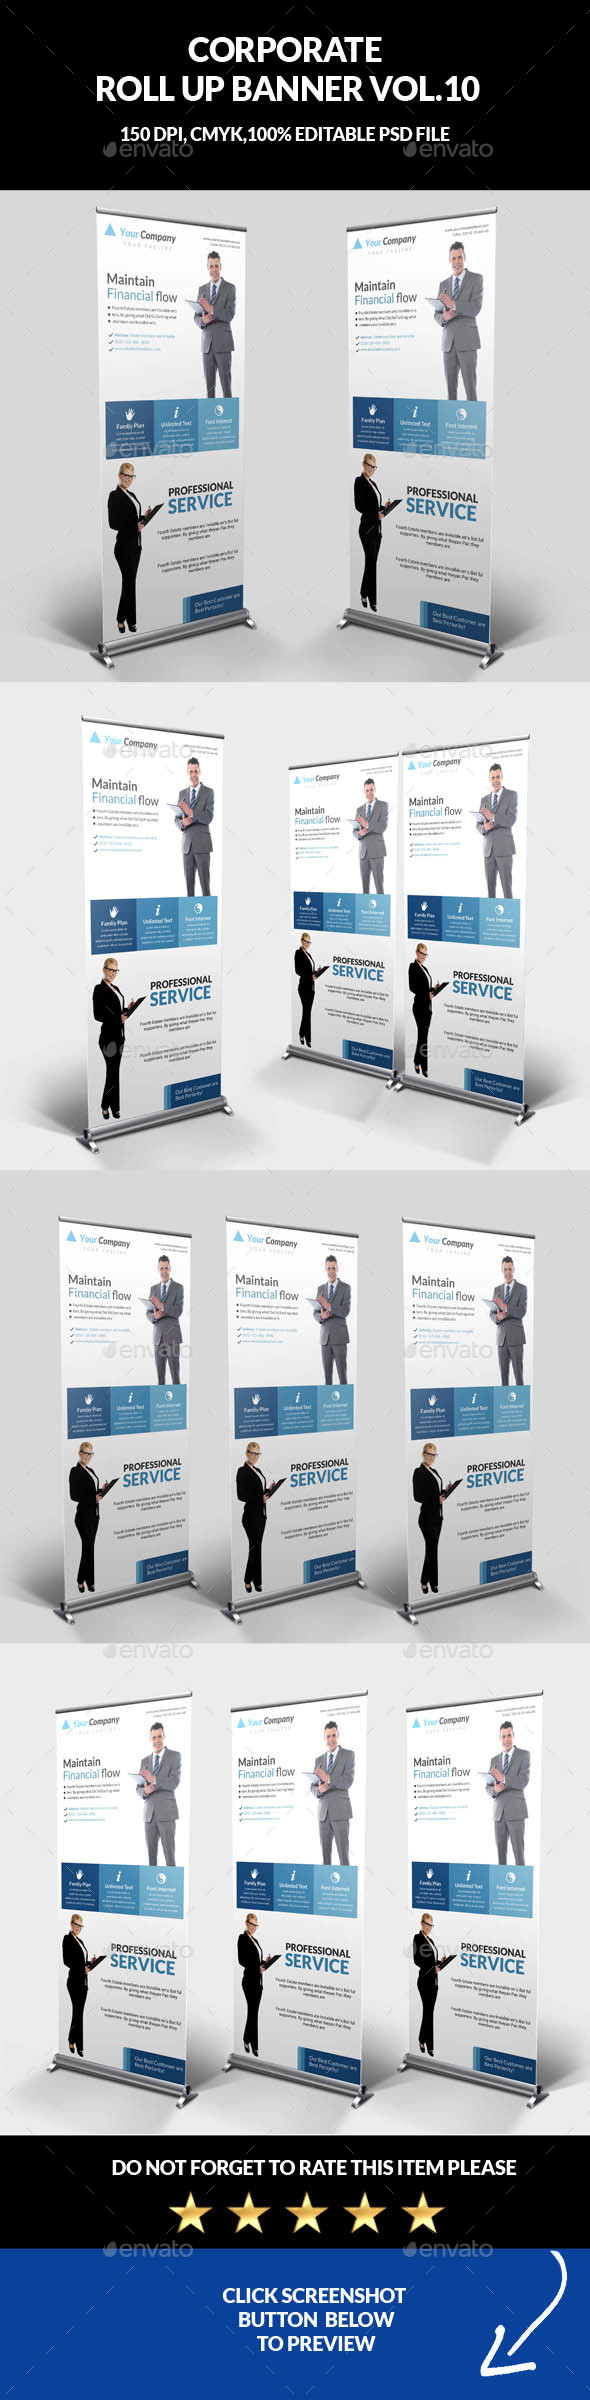 Corporate Business Roll Up Banner Vol.10 - Signage Print Templates